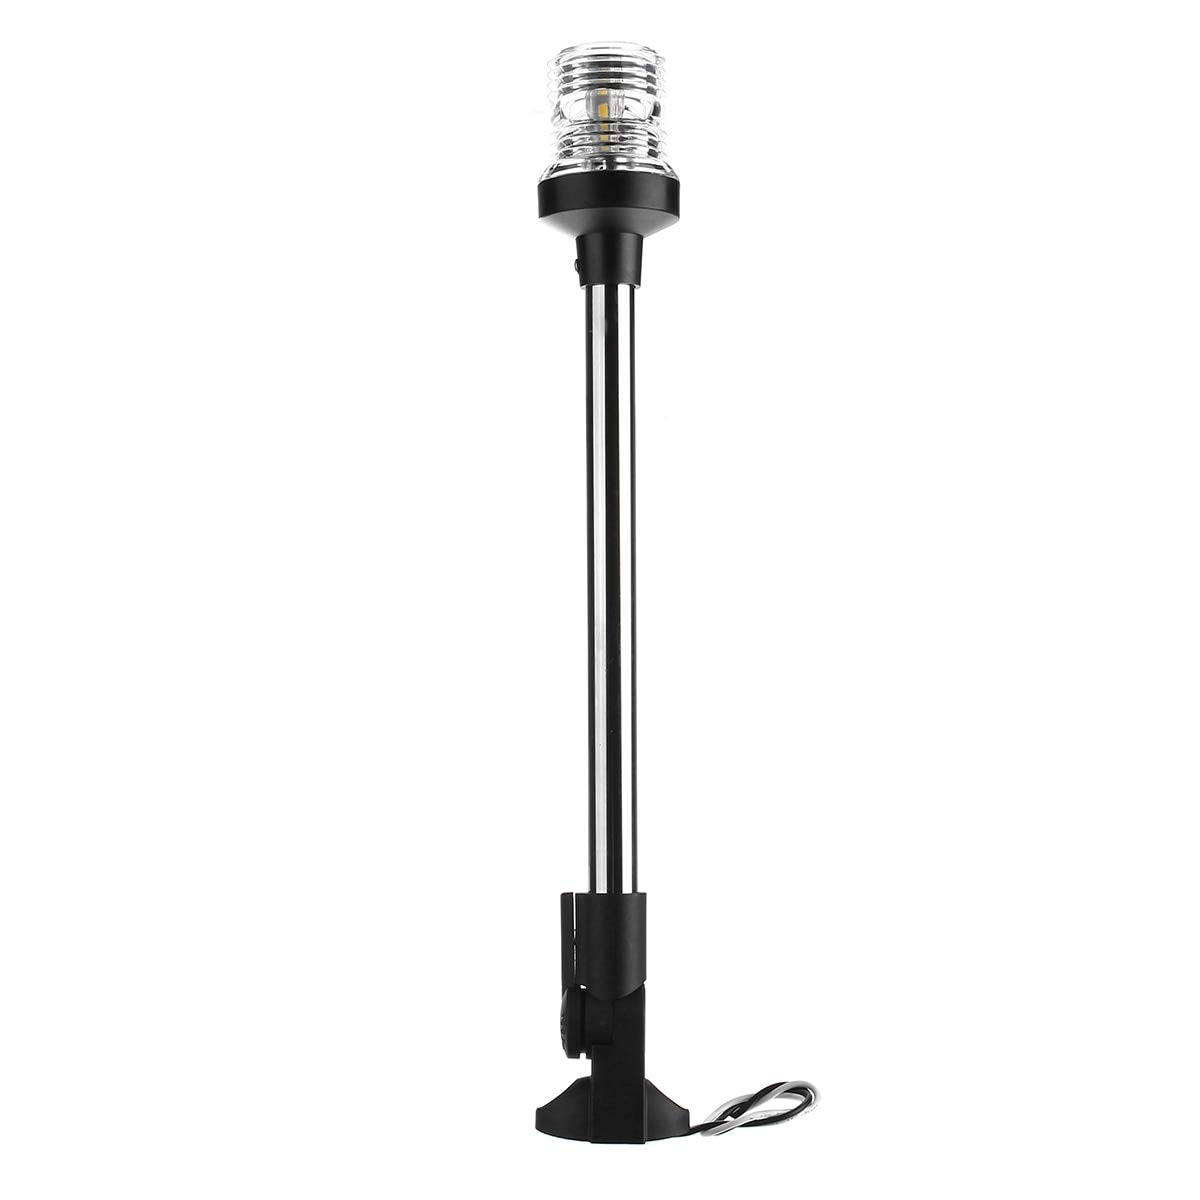 16 Inch 12-24V New Pactrade Fold Down Universal LED